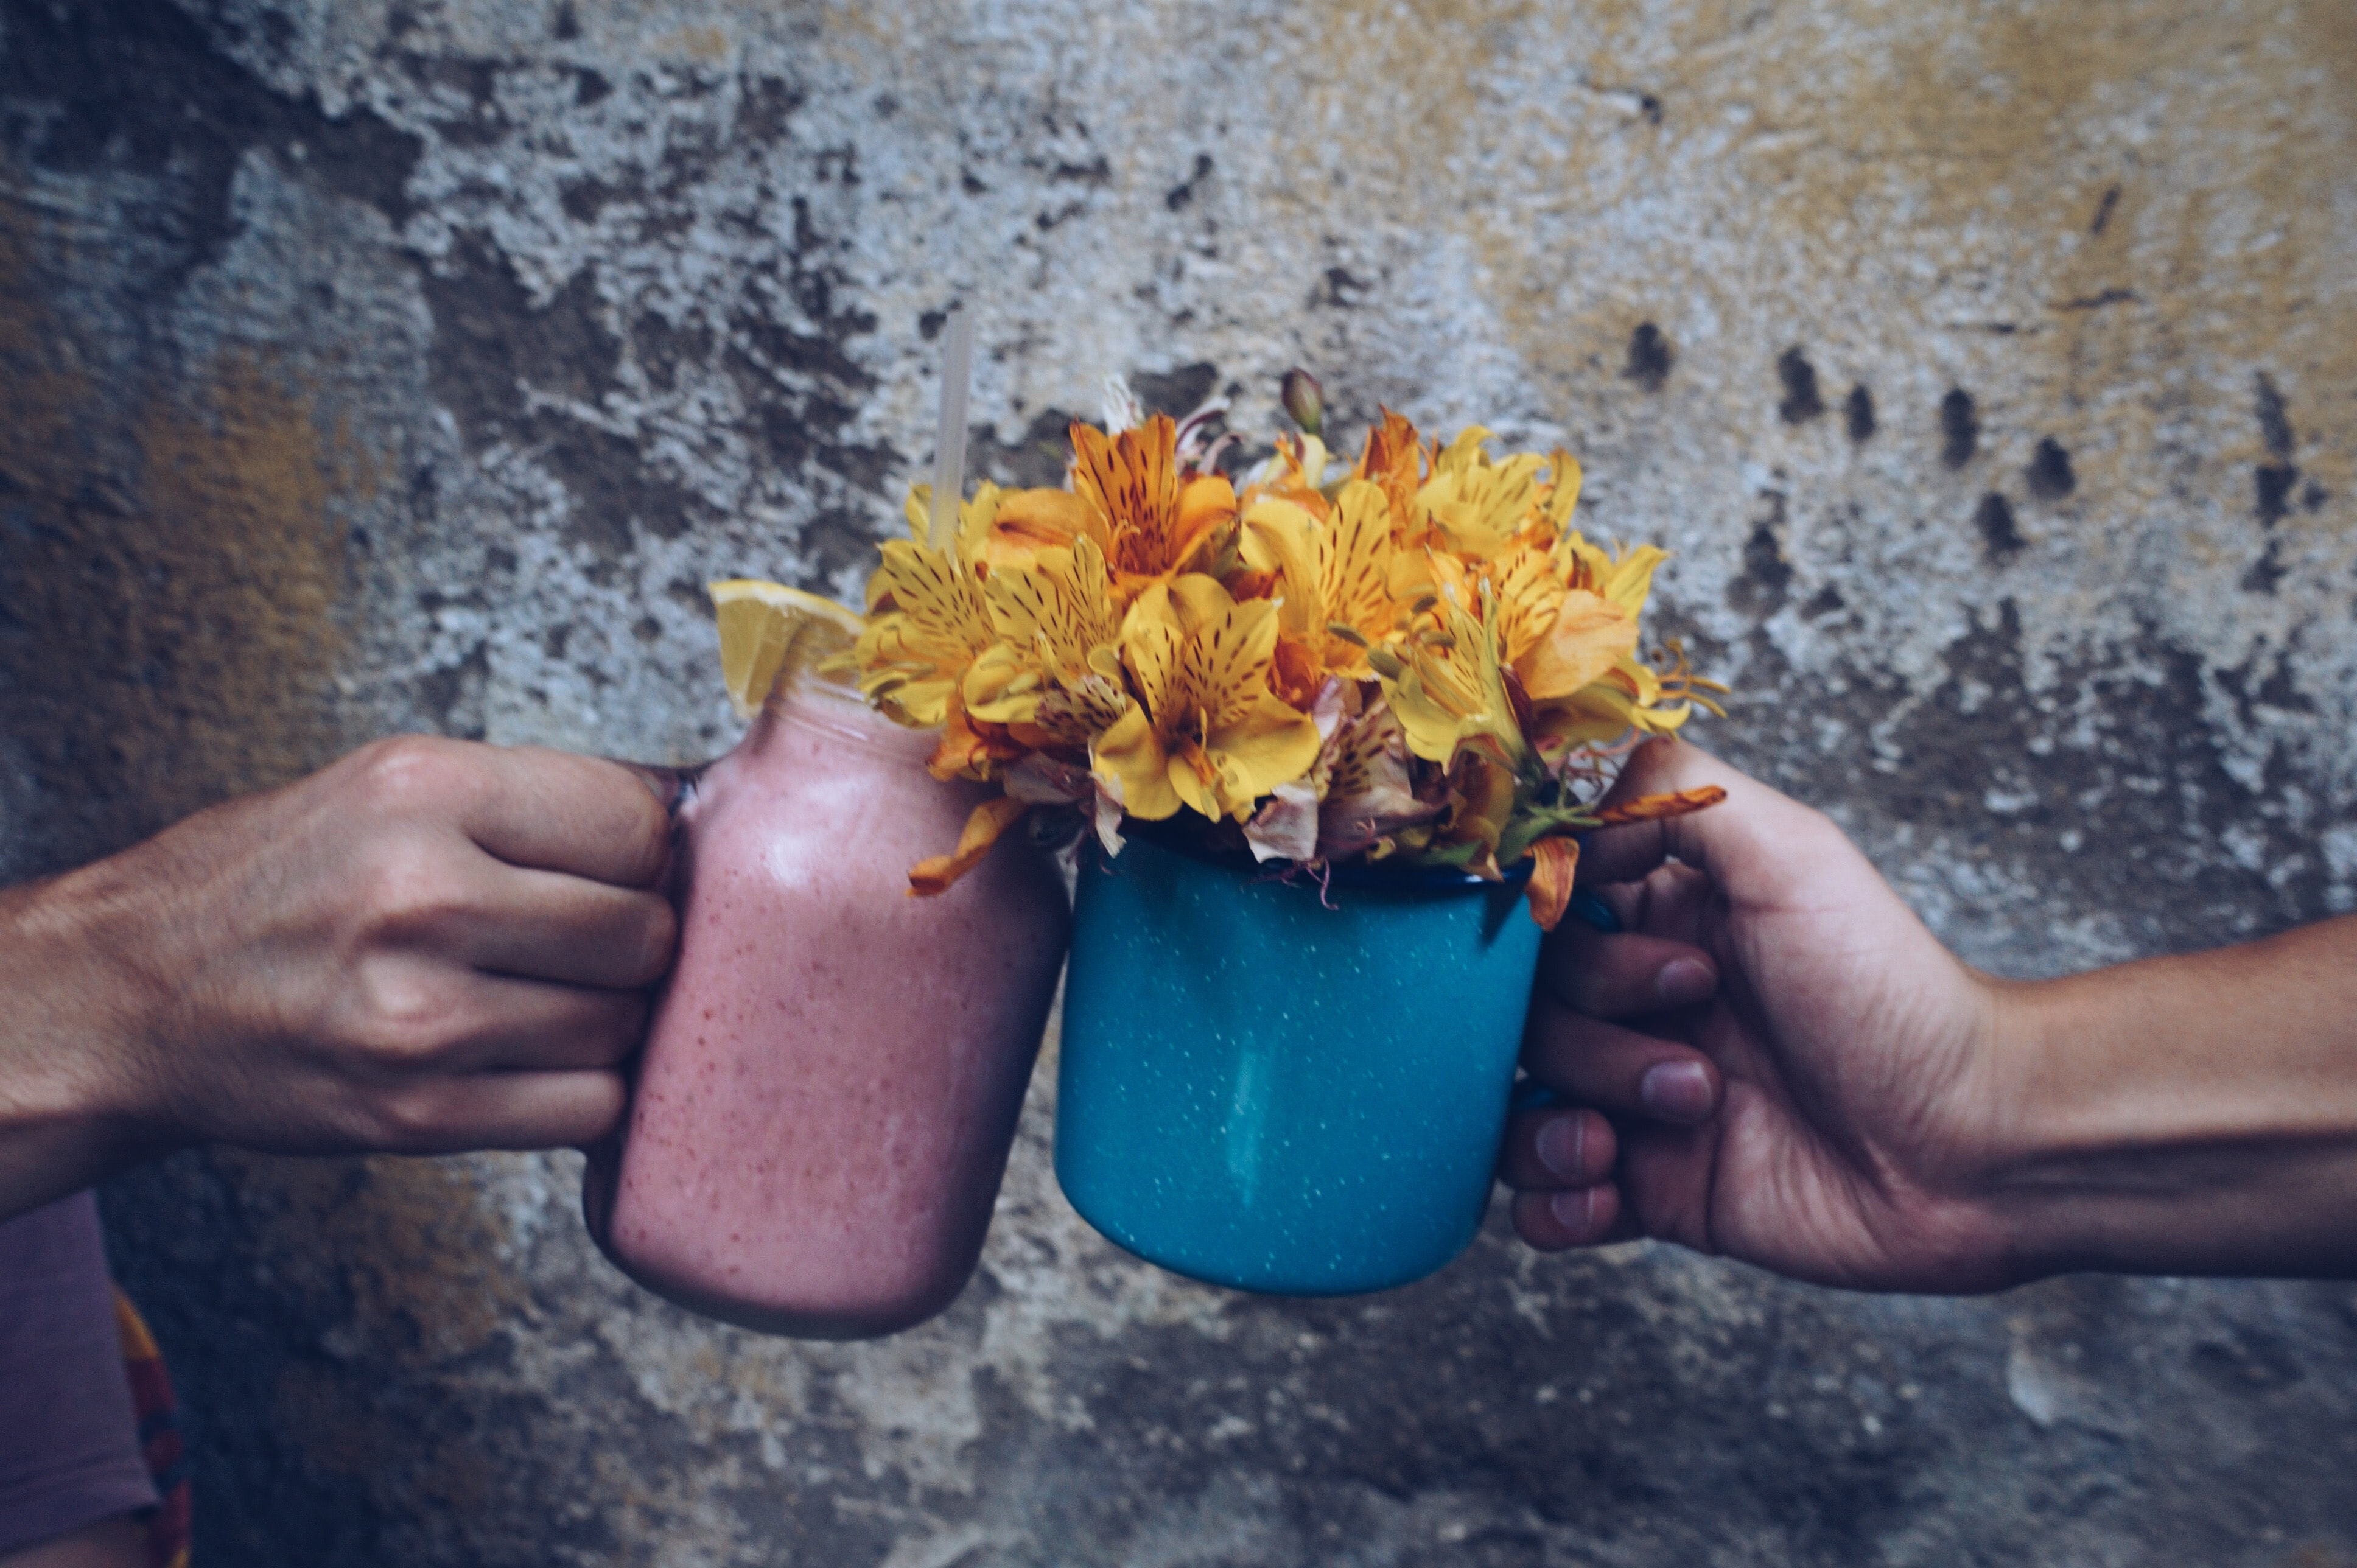 Two people clinking mugs with yellow flowers inside them